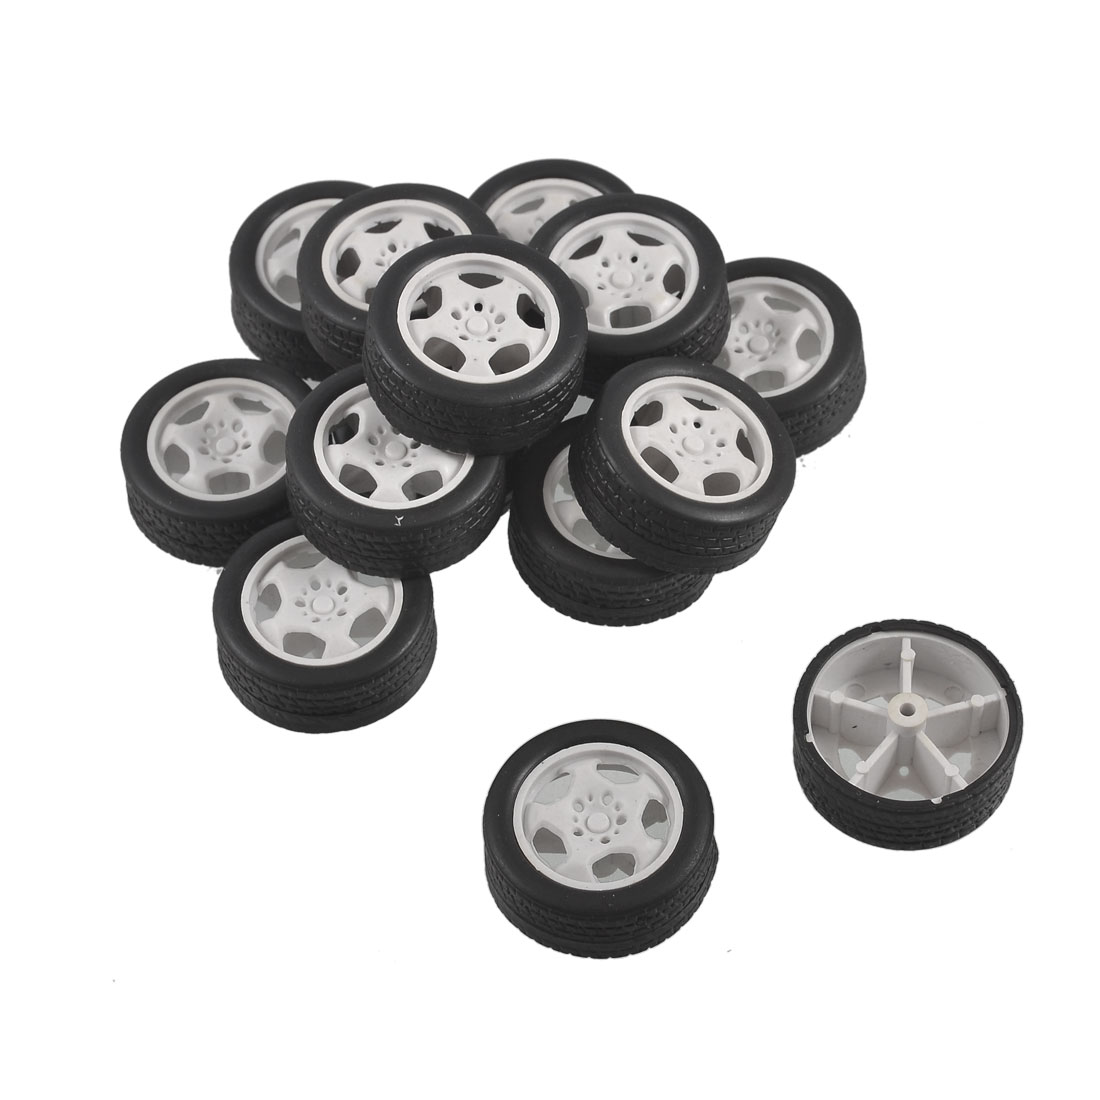 34mm Dia Rubber Roll Plastic Core Kids Toy Vehicles Car Wheels 14 Pcs